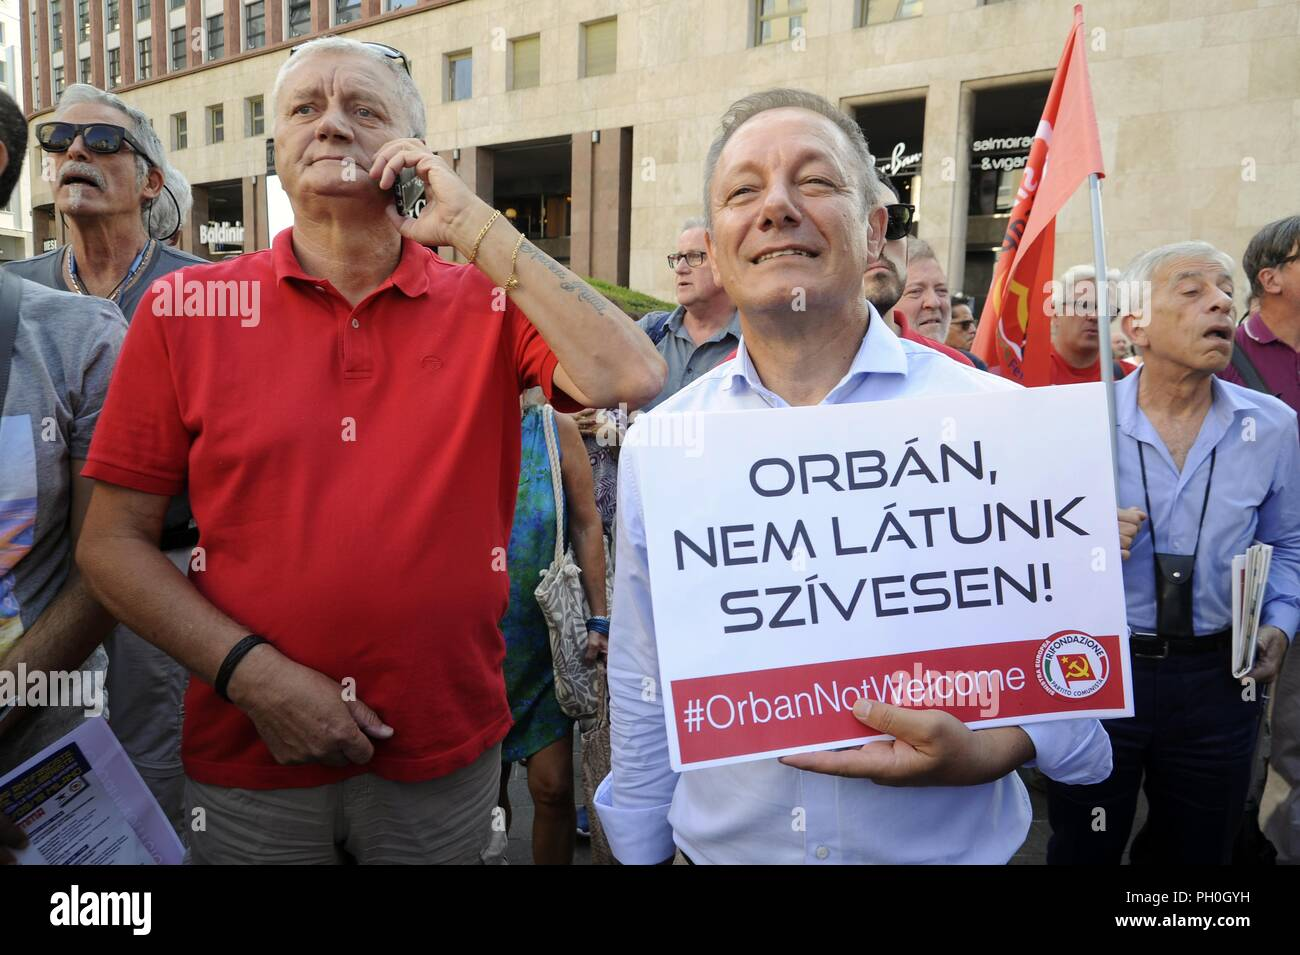 Milan (Italy), 28 August 2018, anti-fascist and anti-racist demonstration called by numerous left-wing and democratic parties and organizations to mark the meeting in the prefecture of Matteo Salvini, minister of the interior and leader of the right-wing party Lega, with the Hungarian premier Viktor Orban. - Stock Image